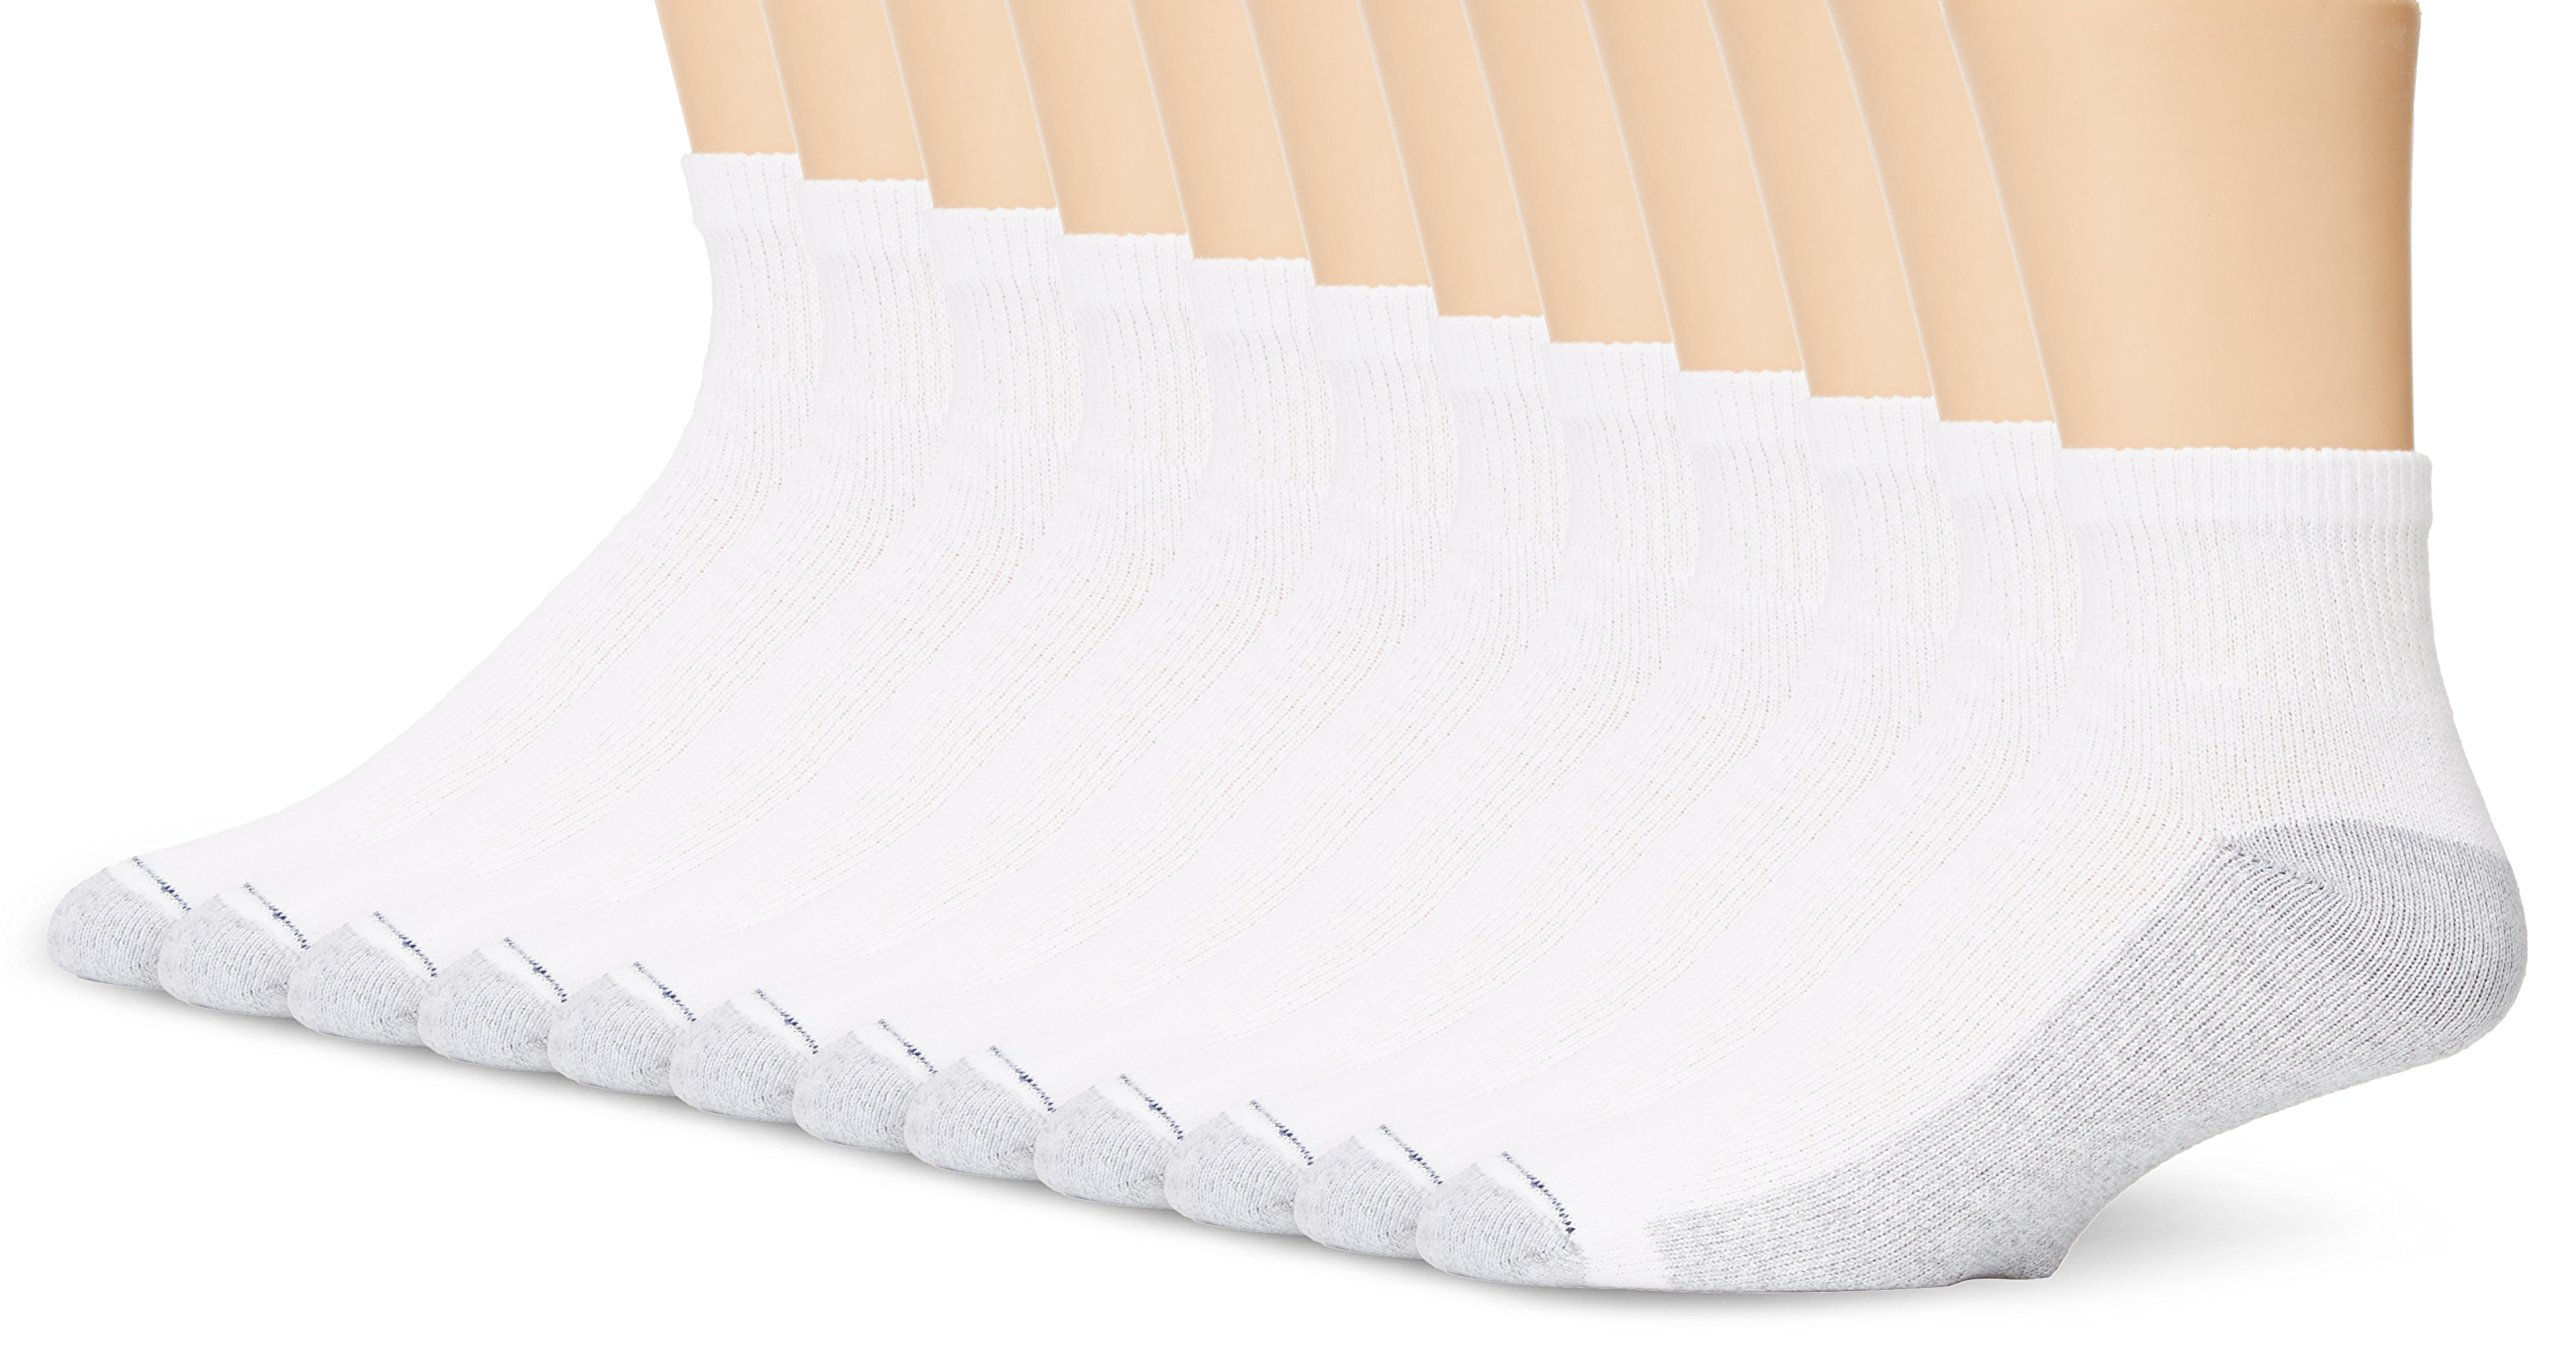 Hanes Men`s Ankle Socks, 186V12,12-Pack, 10-13, White (Shoe Size 6-12)